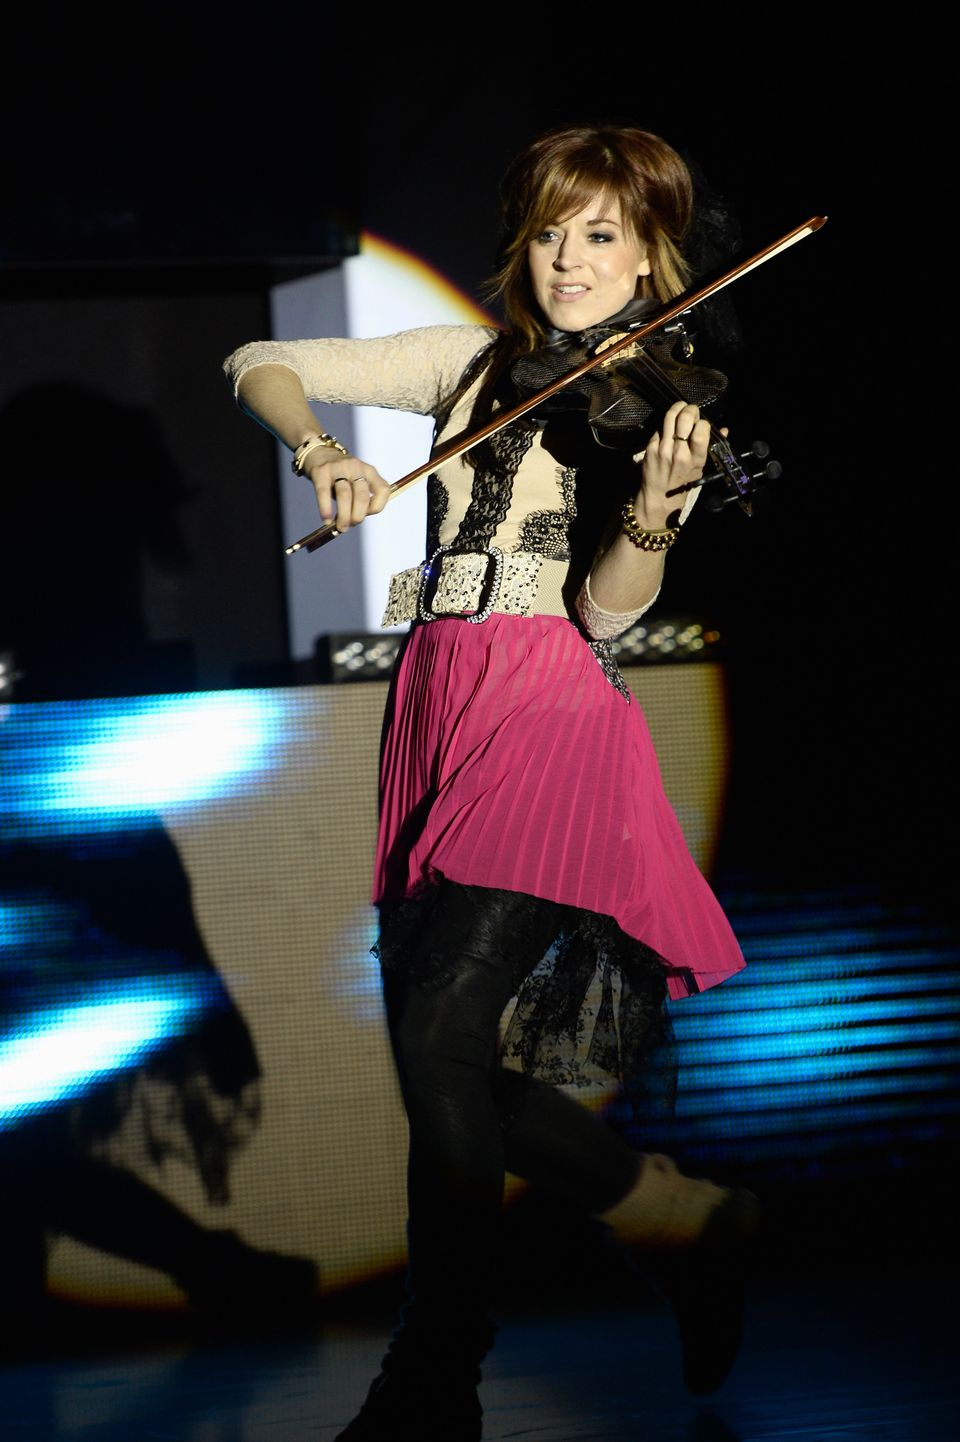 BERLIN, GERMANY - SEPTEMBER 12:  Lindsey Stirling performs at the Dreamball 2013 charity gala at Ritz Carlton on September 12